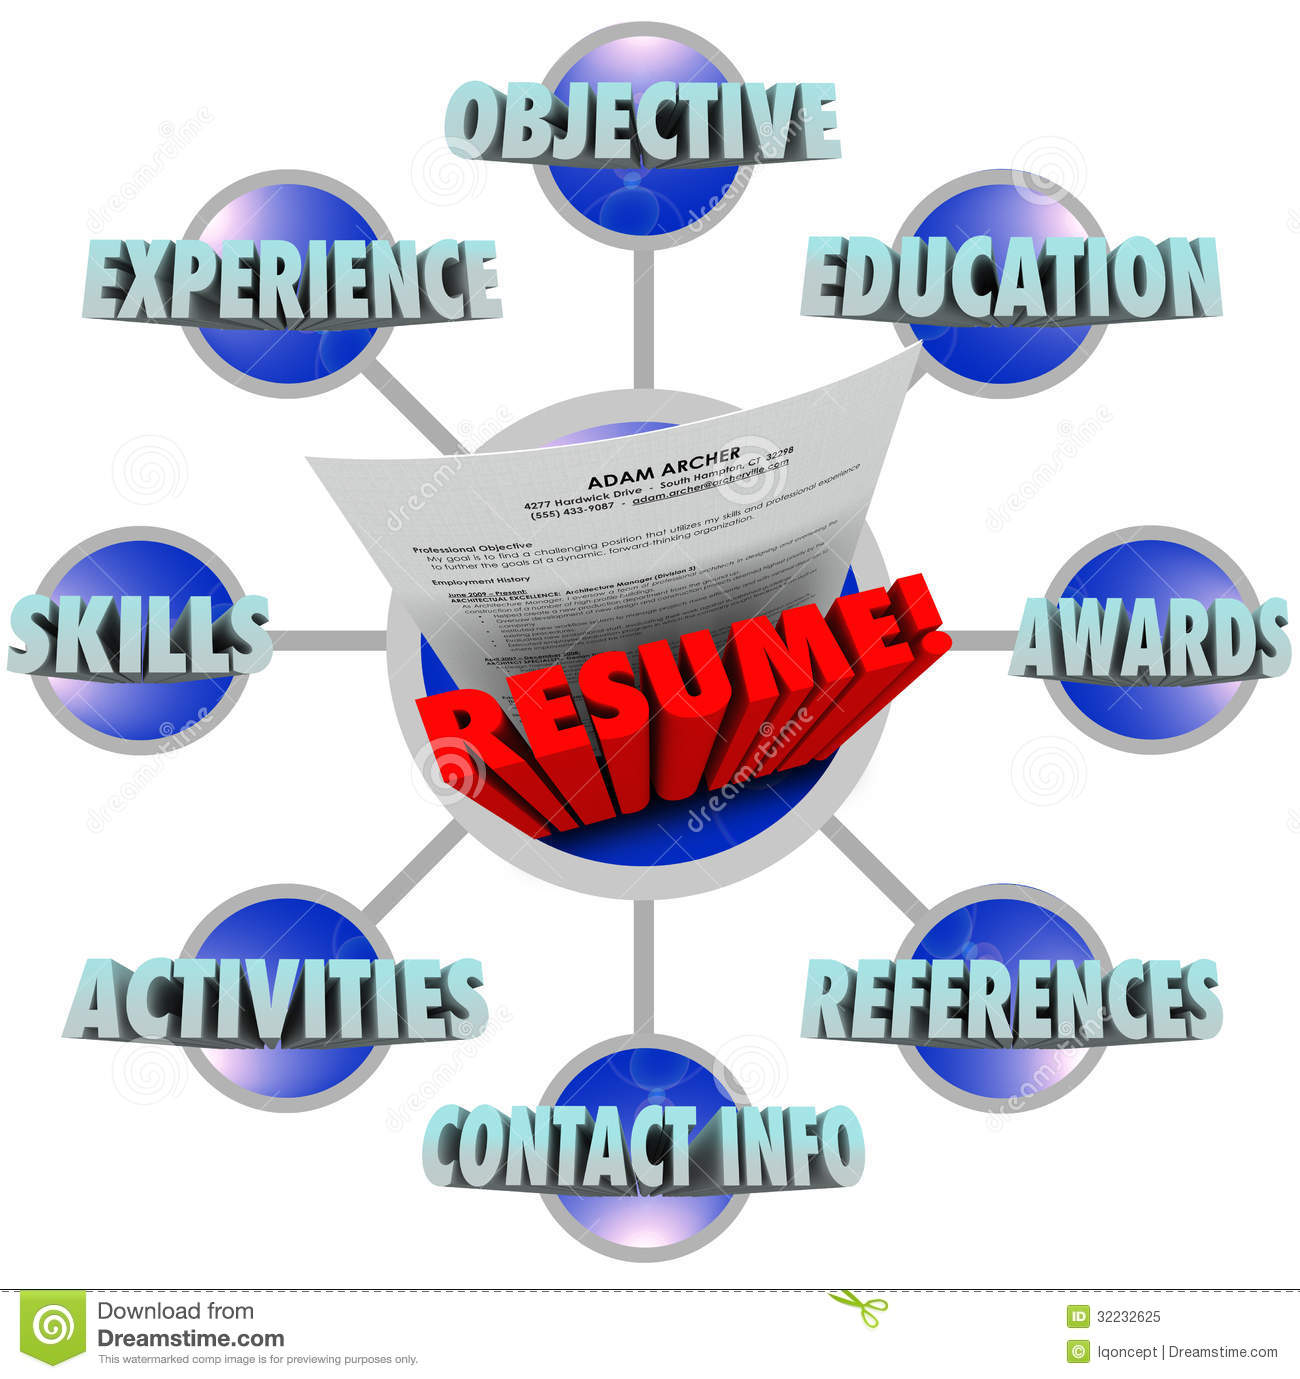 the words great resume and many terms that must be included to get the